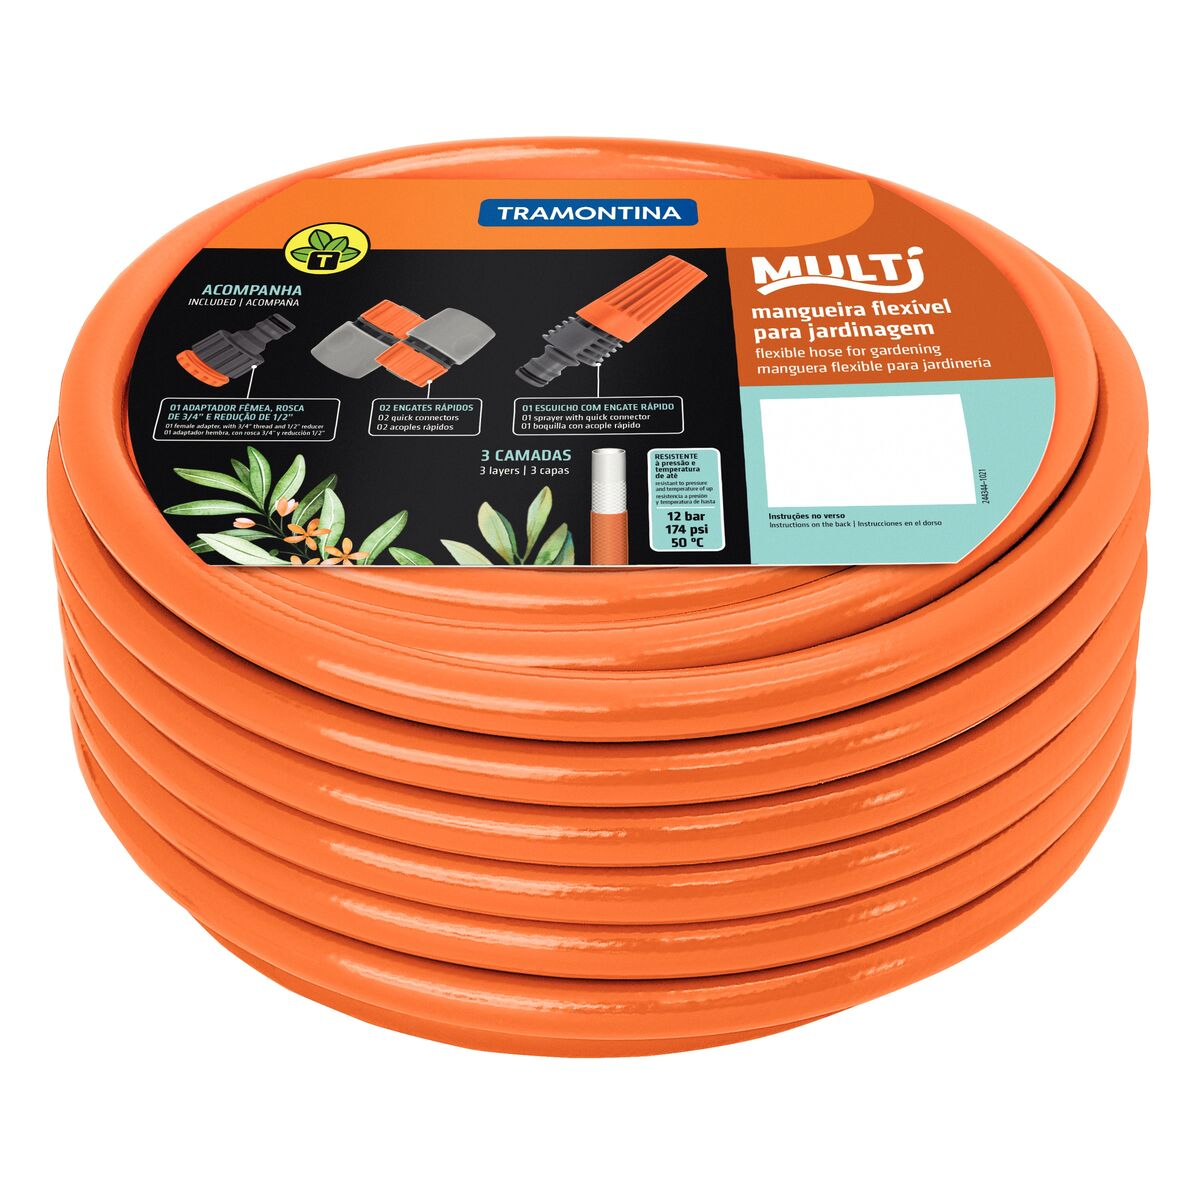 Tramontina 1 2 Super Flex Garden Hose 10 M Quick Connectors And Electrical Wire Flexible Pipe Sprayer